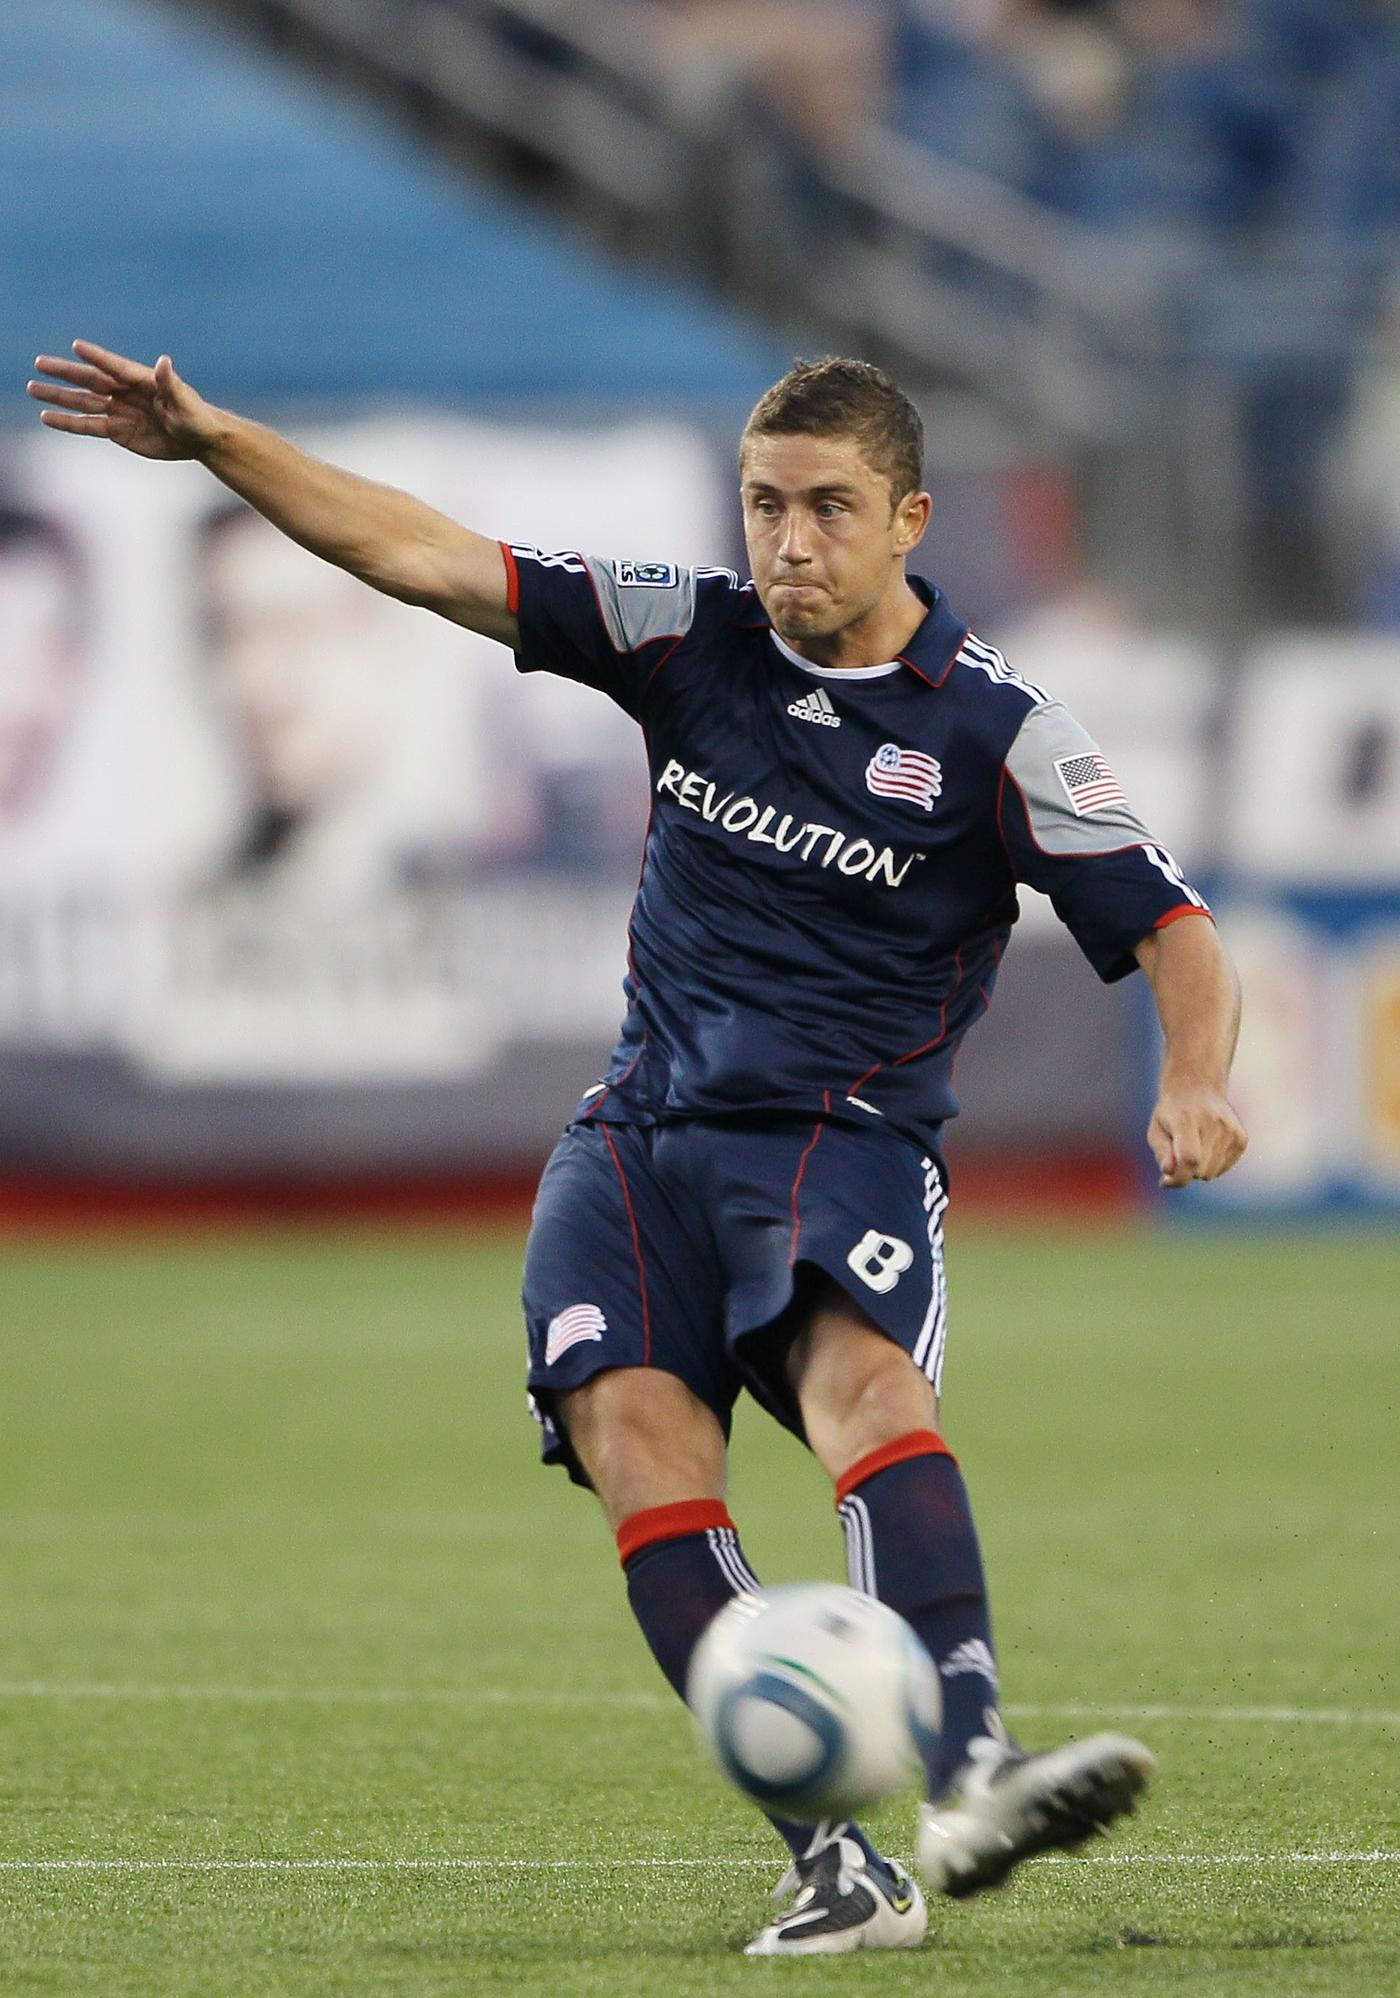 Chris Tierney served as the Revolution's set-piece specialist against D.C. United with Marko Perovic injured